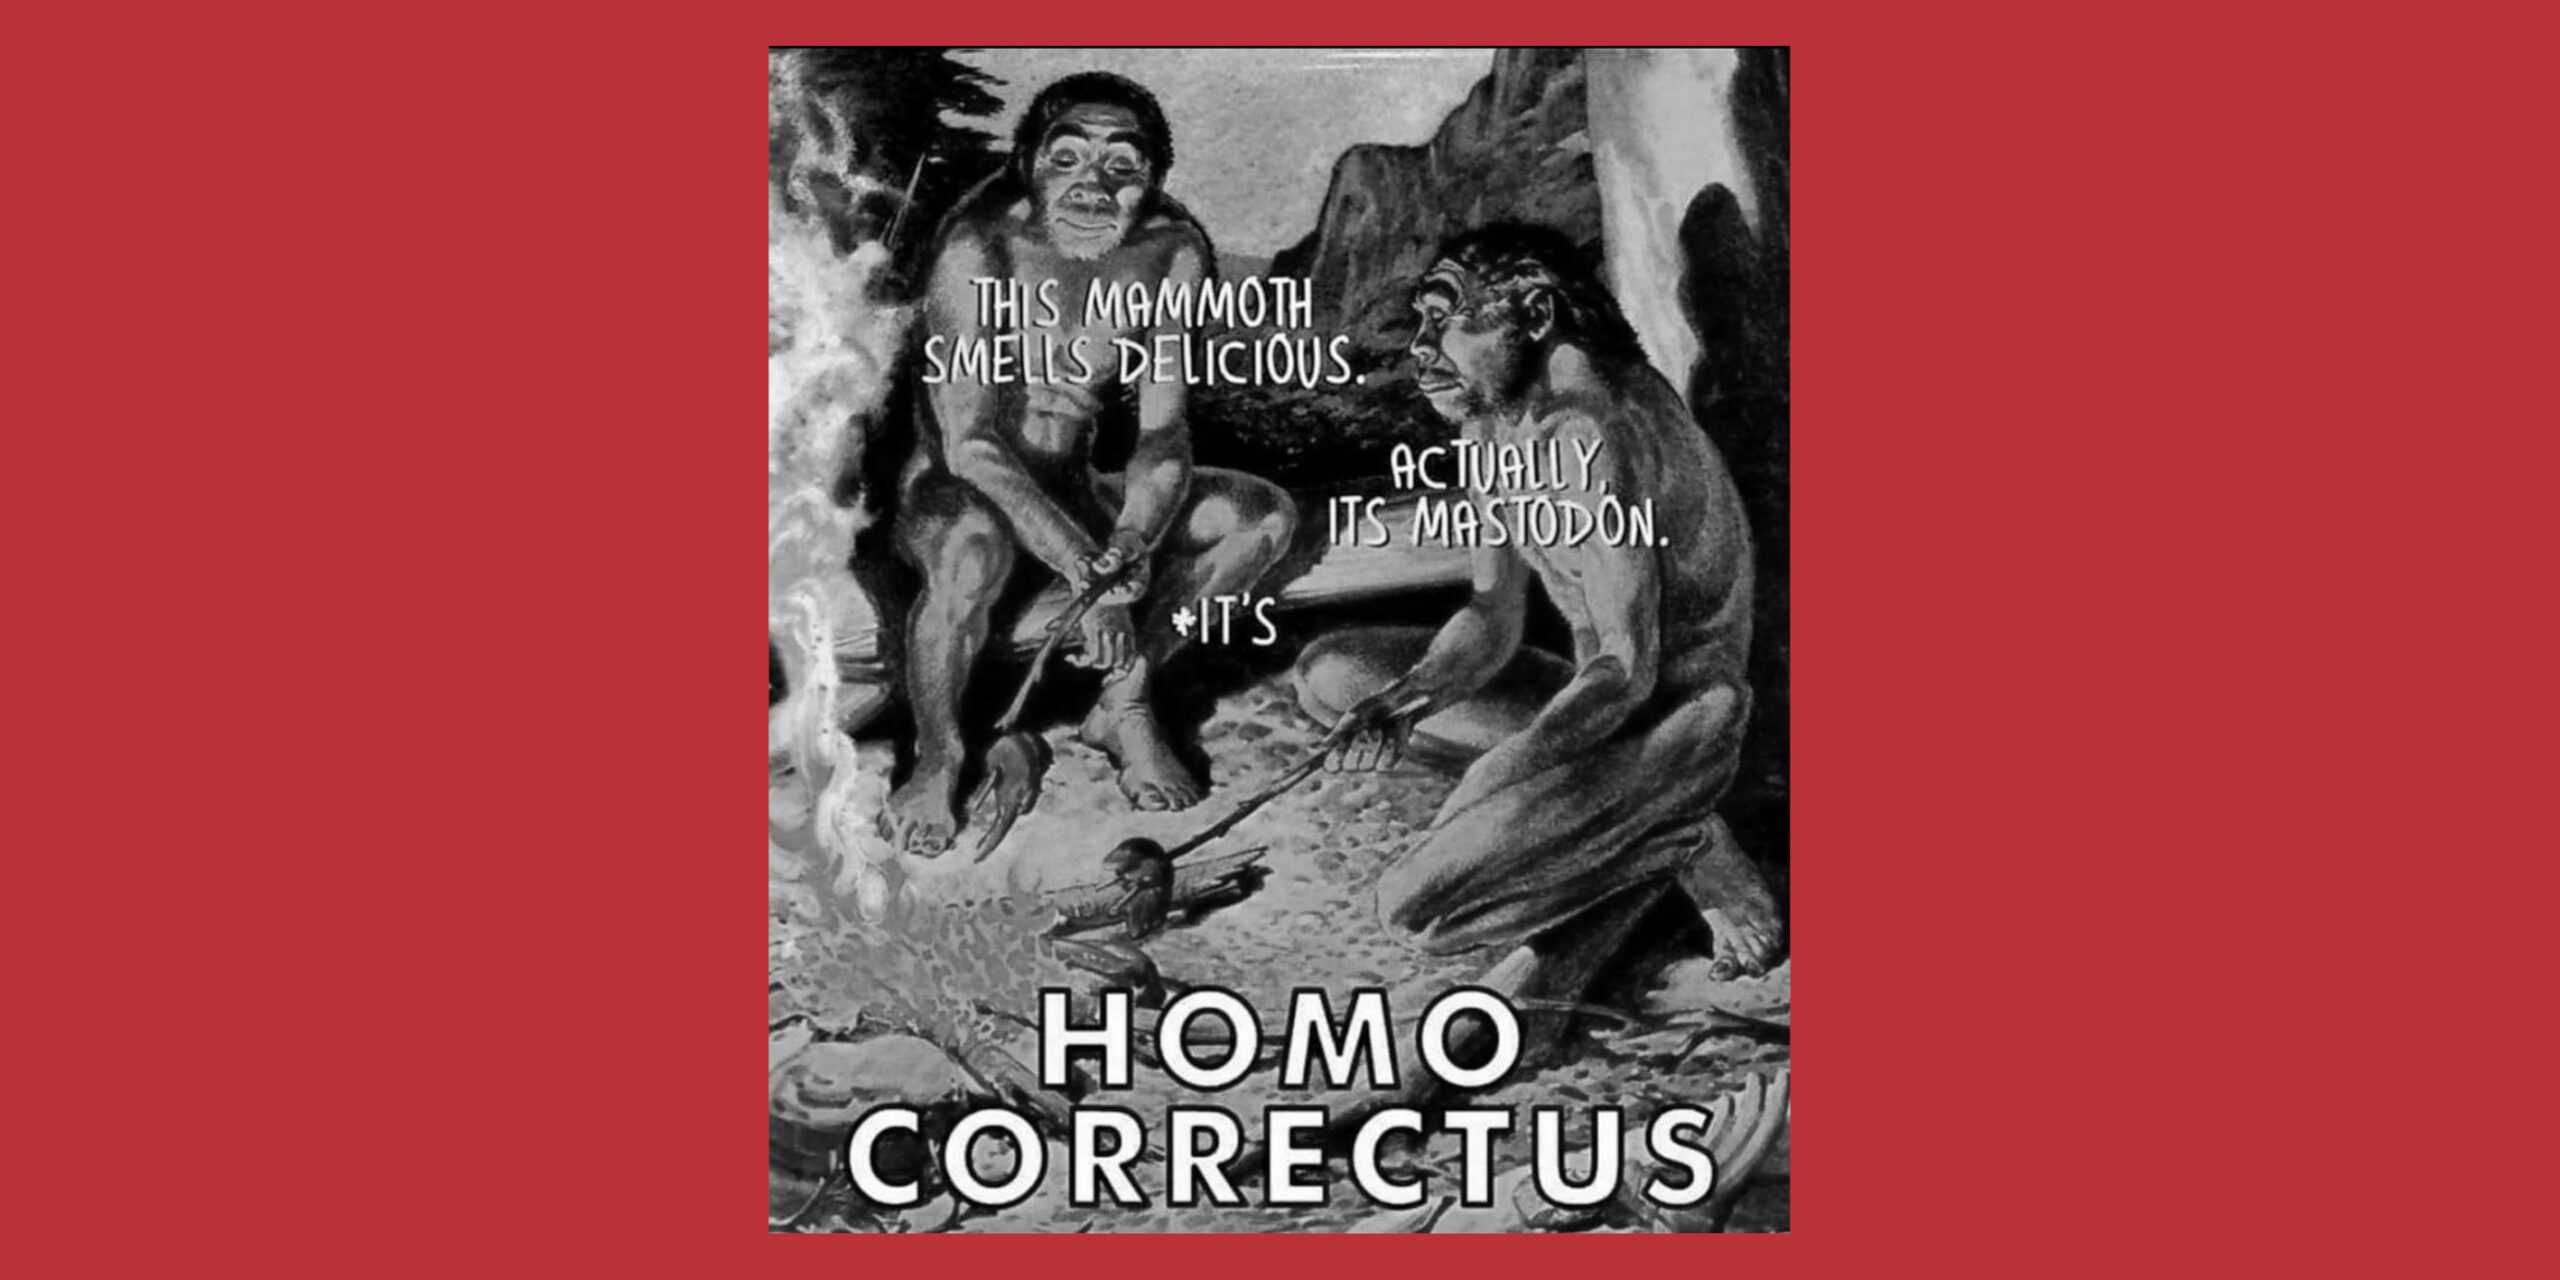 """Meme of one caveman correcting another about the correct name of an animal: the caption reads """"Homo Correctus"""""""